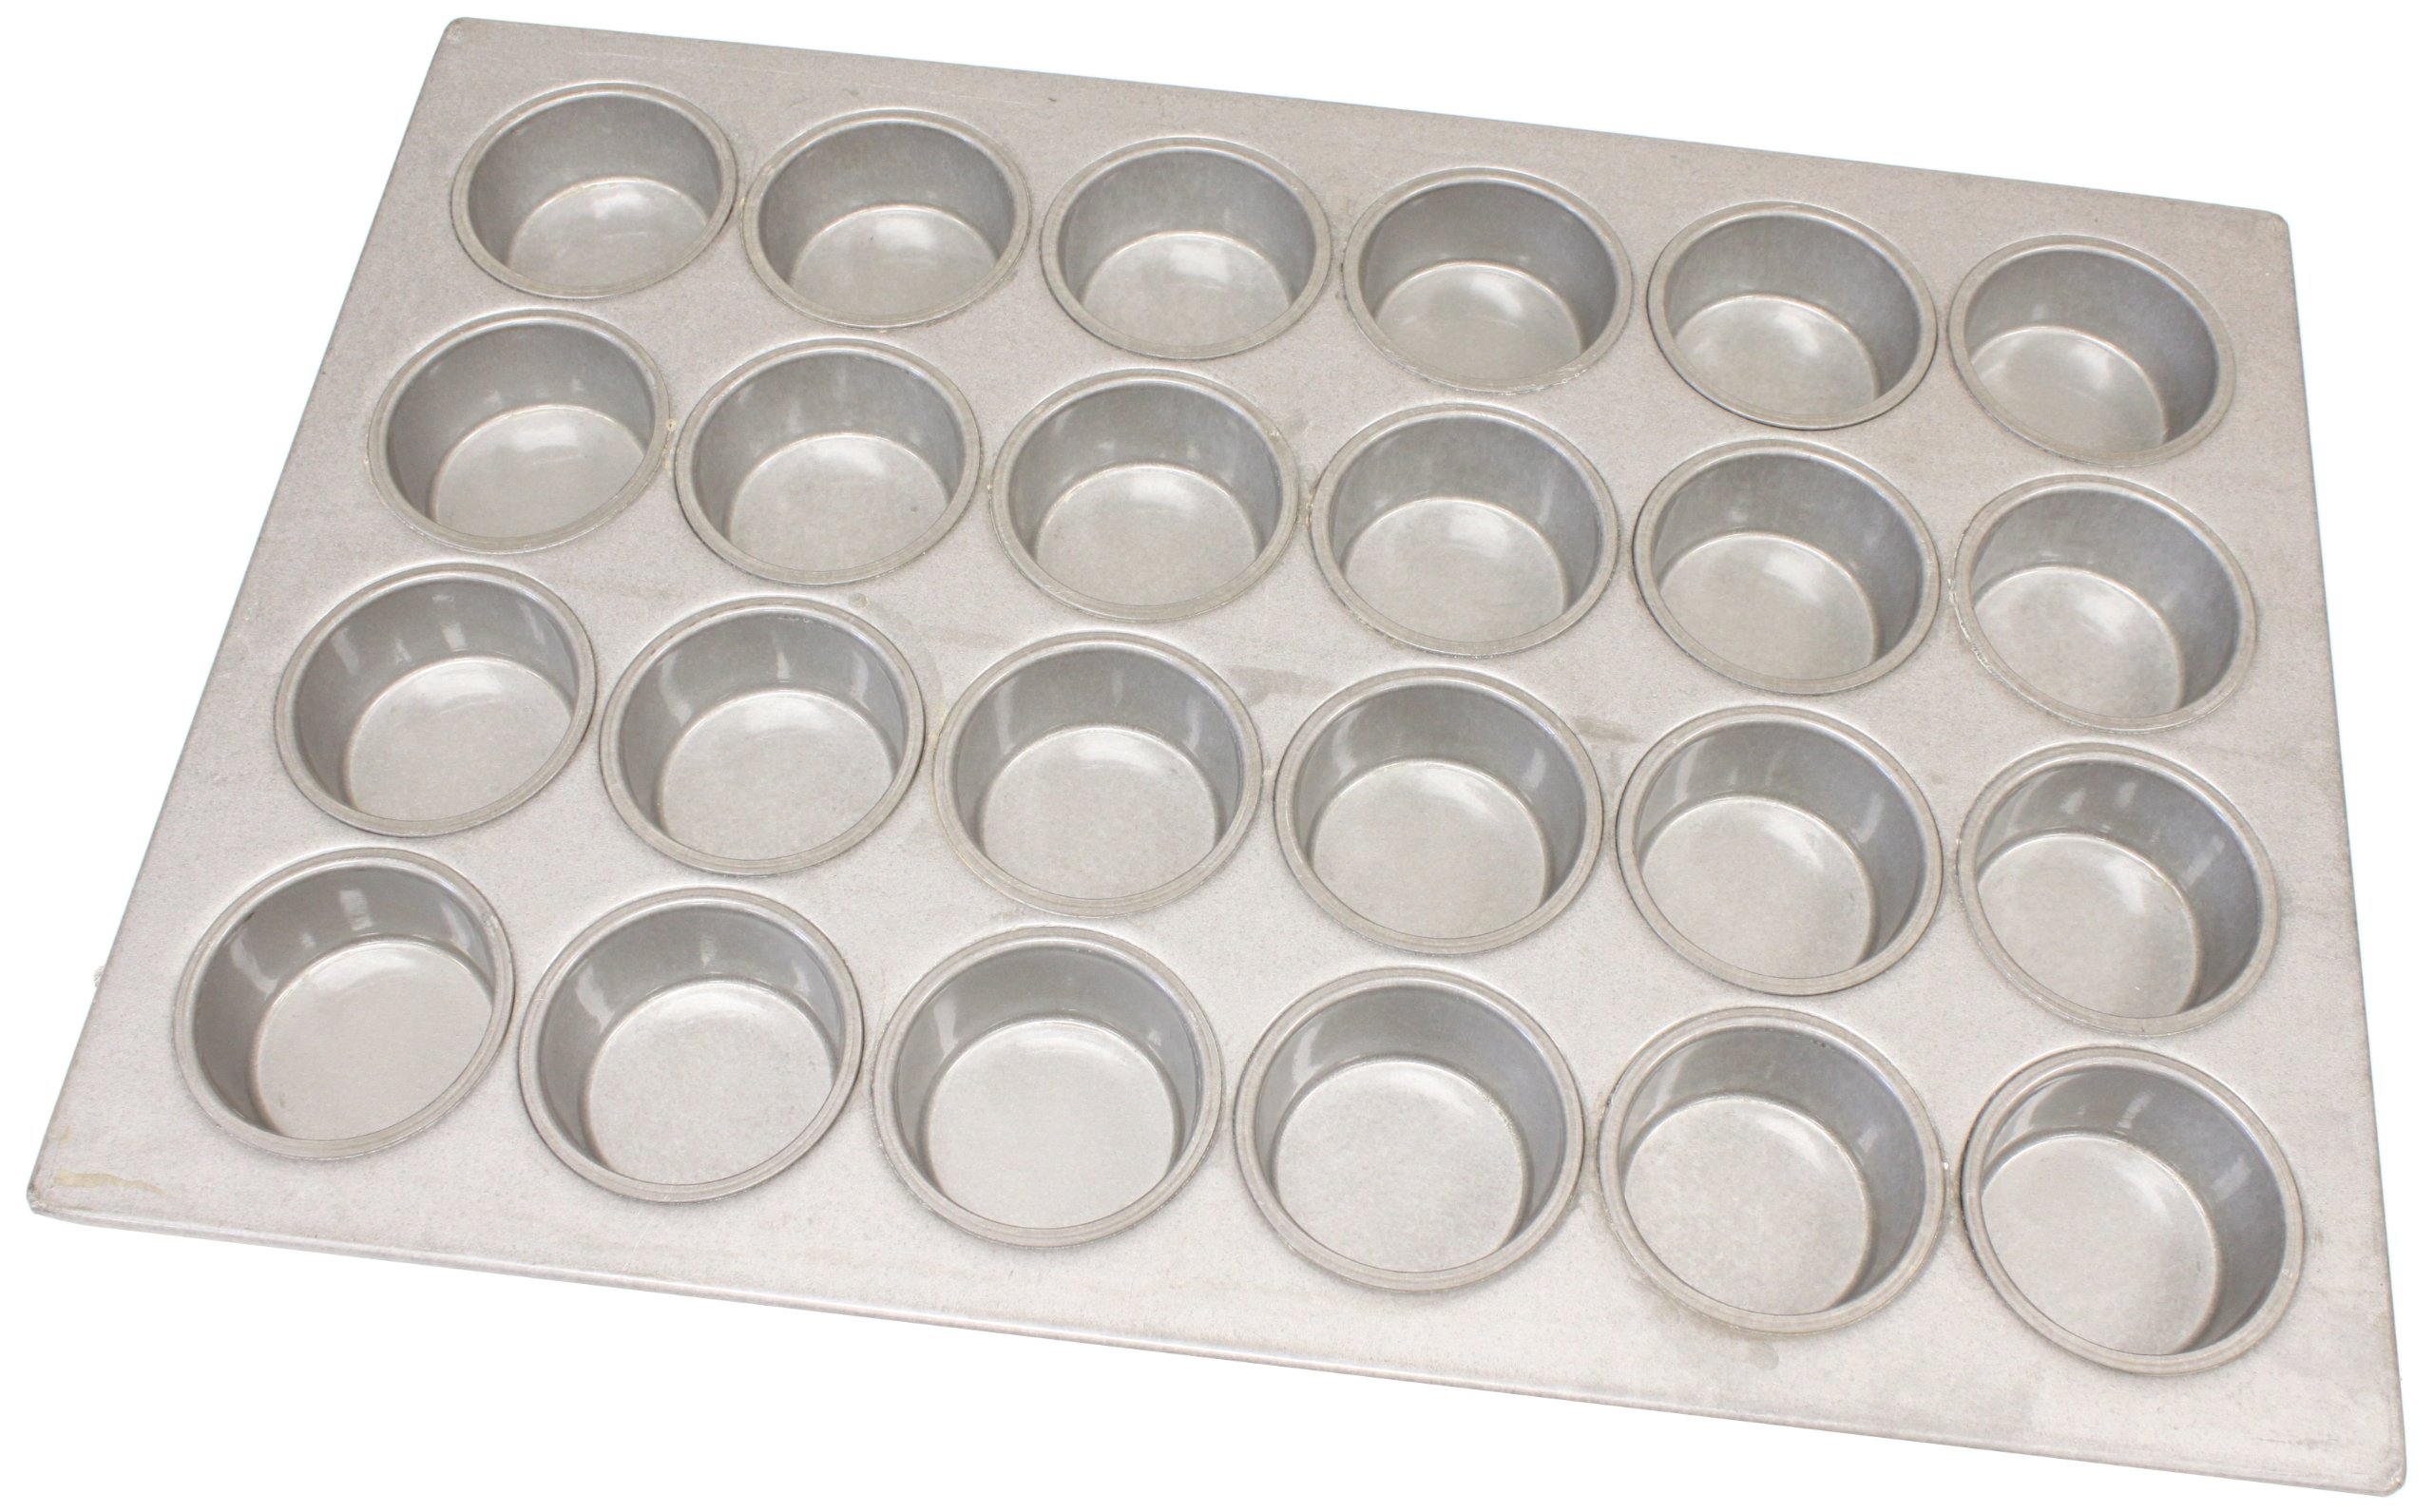 Magna Industries 15338 22-Gauge Aluminized Steel Jumbo Muffin Pan, 3-3/8'' Diameter, 4 x 6 Cups Layout (Pack of 6)